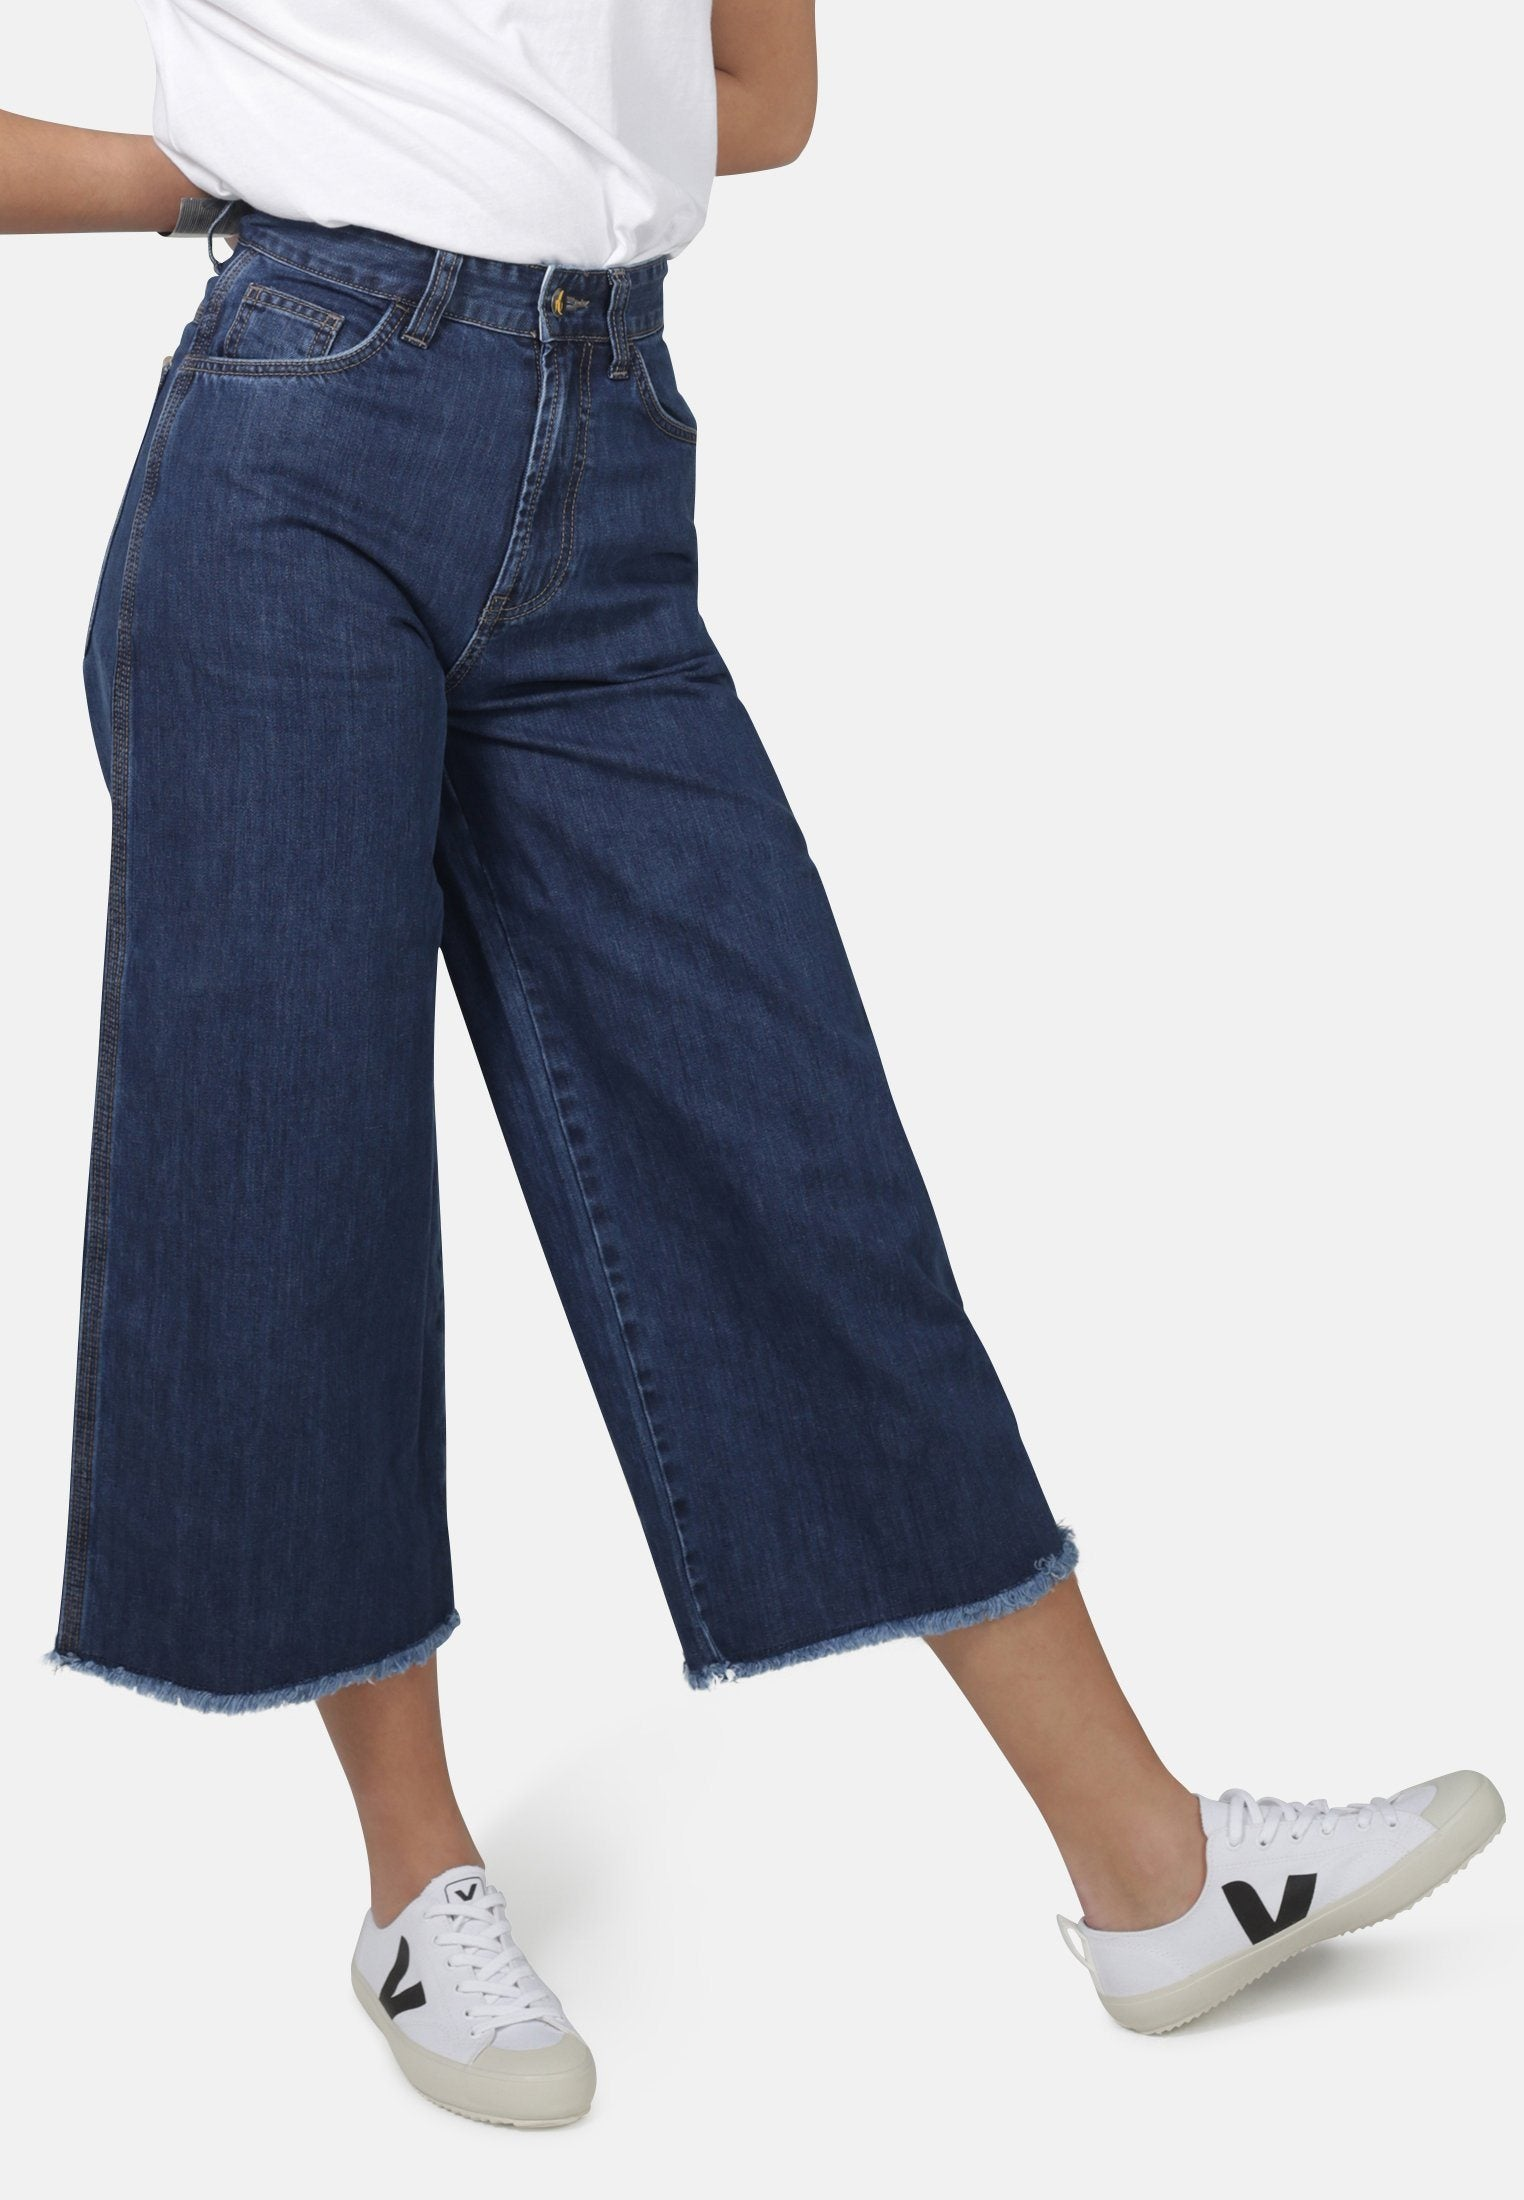 Skate Cropped Dark Vintage Organic Cotton Jeans - Komodo Fashion